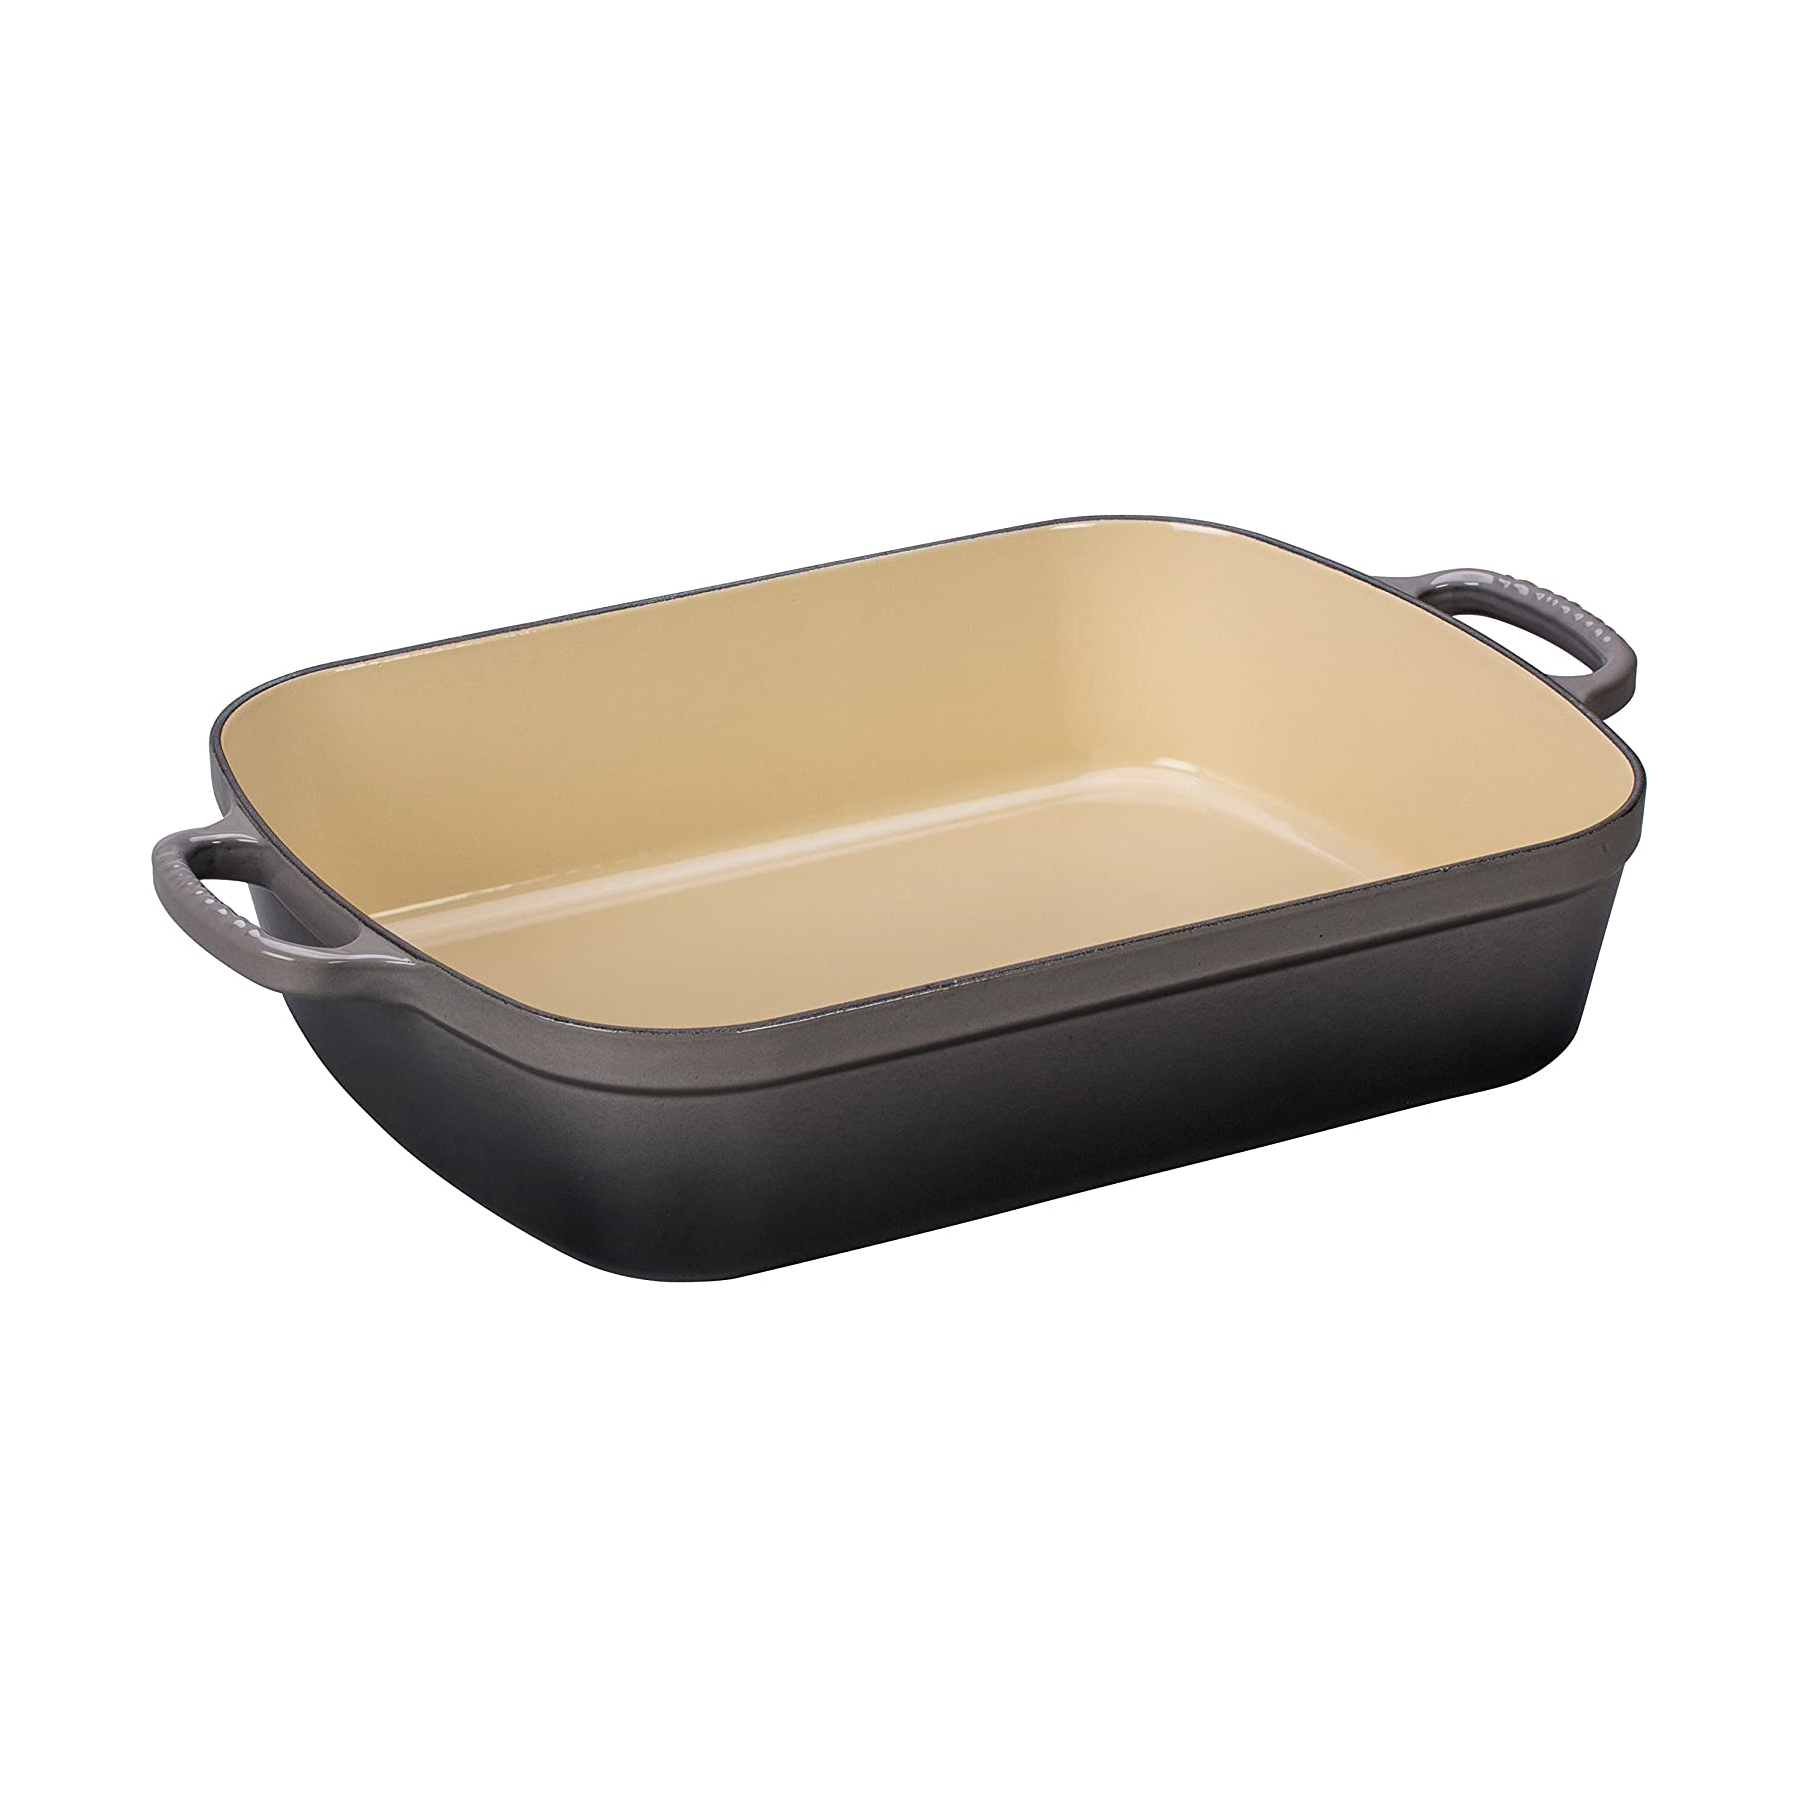 Le Creuset Enameled Cast Iron Signature Rectangular Roaster